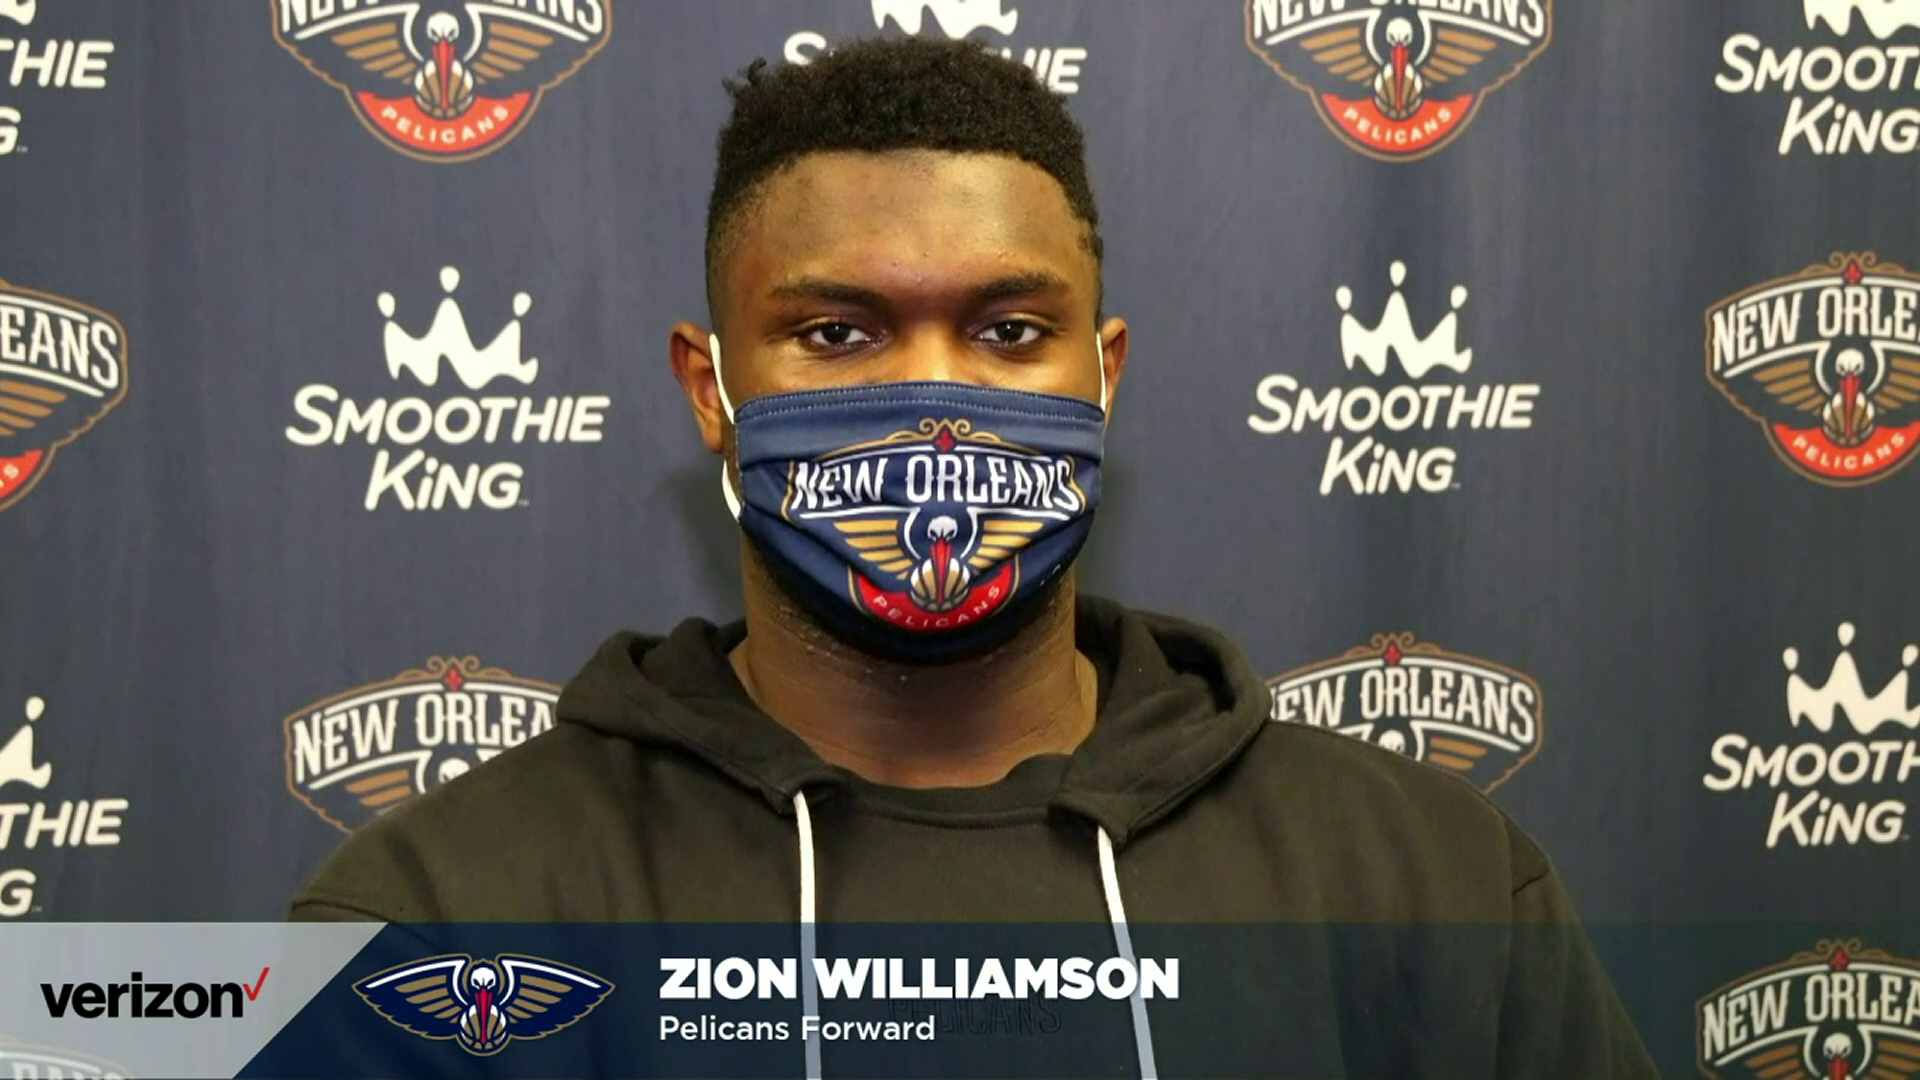 Pelicans-Spurs Postgame: Zion Williamson 2-27-21